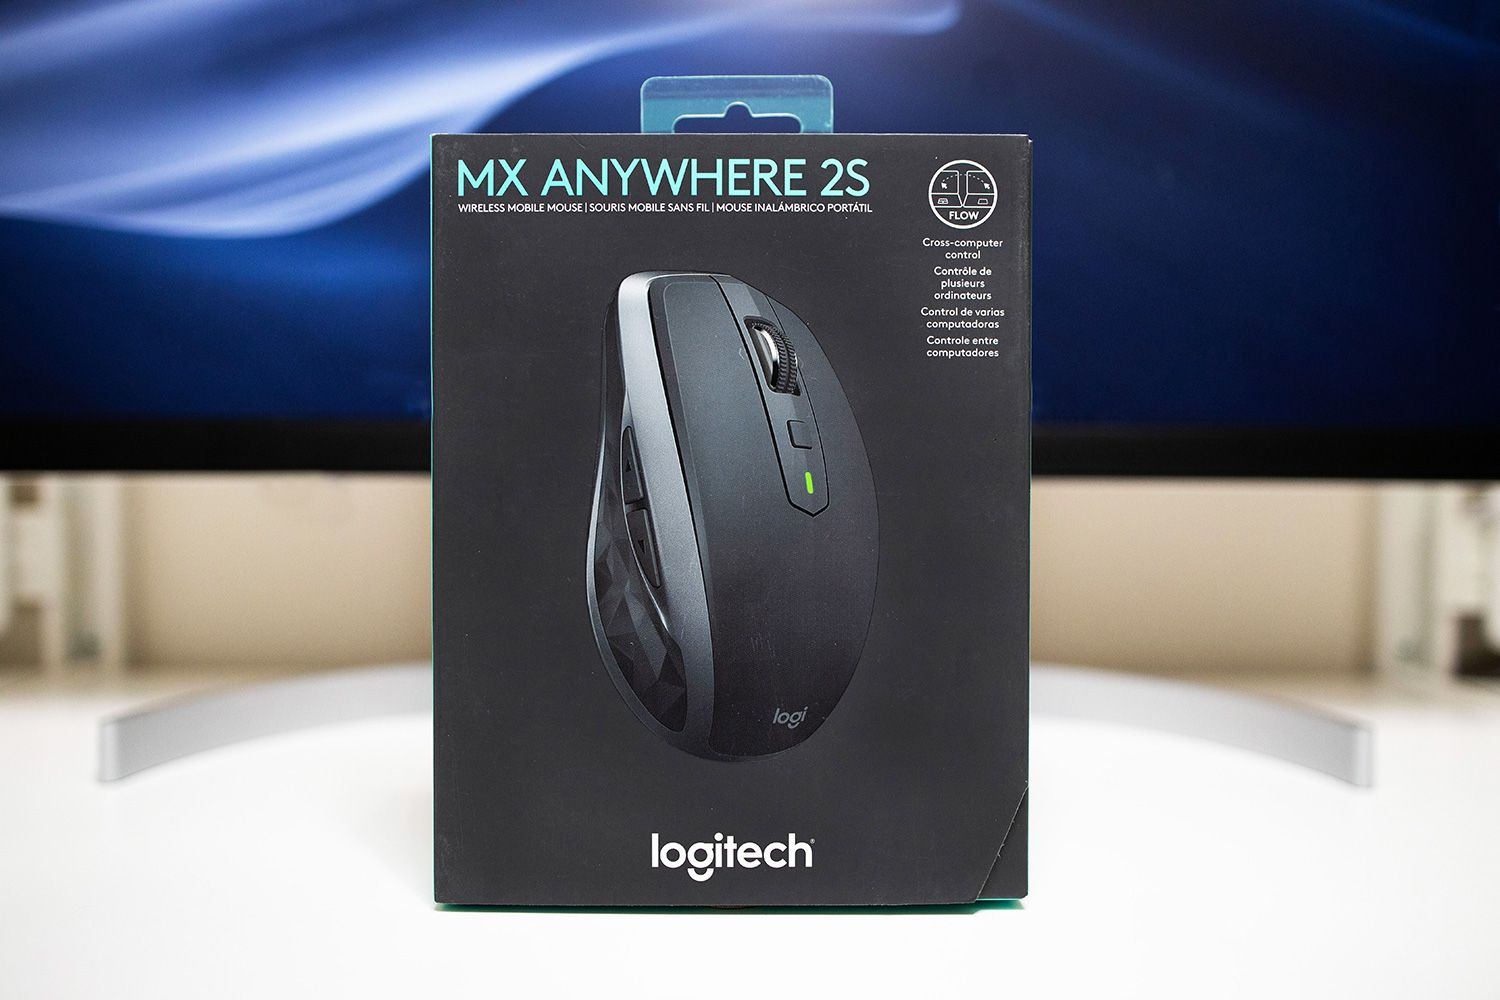 f0bdf9a4e92 Logitech MX Anywhere 2S Wireless Mouse